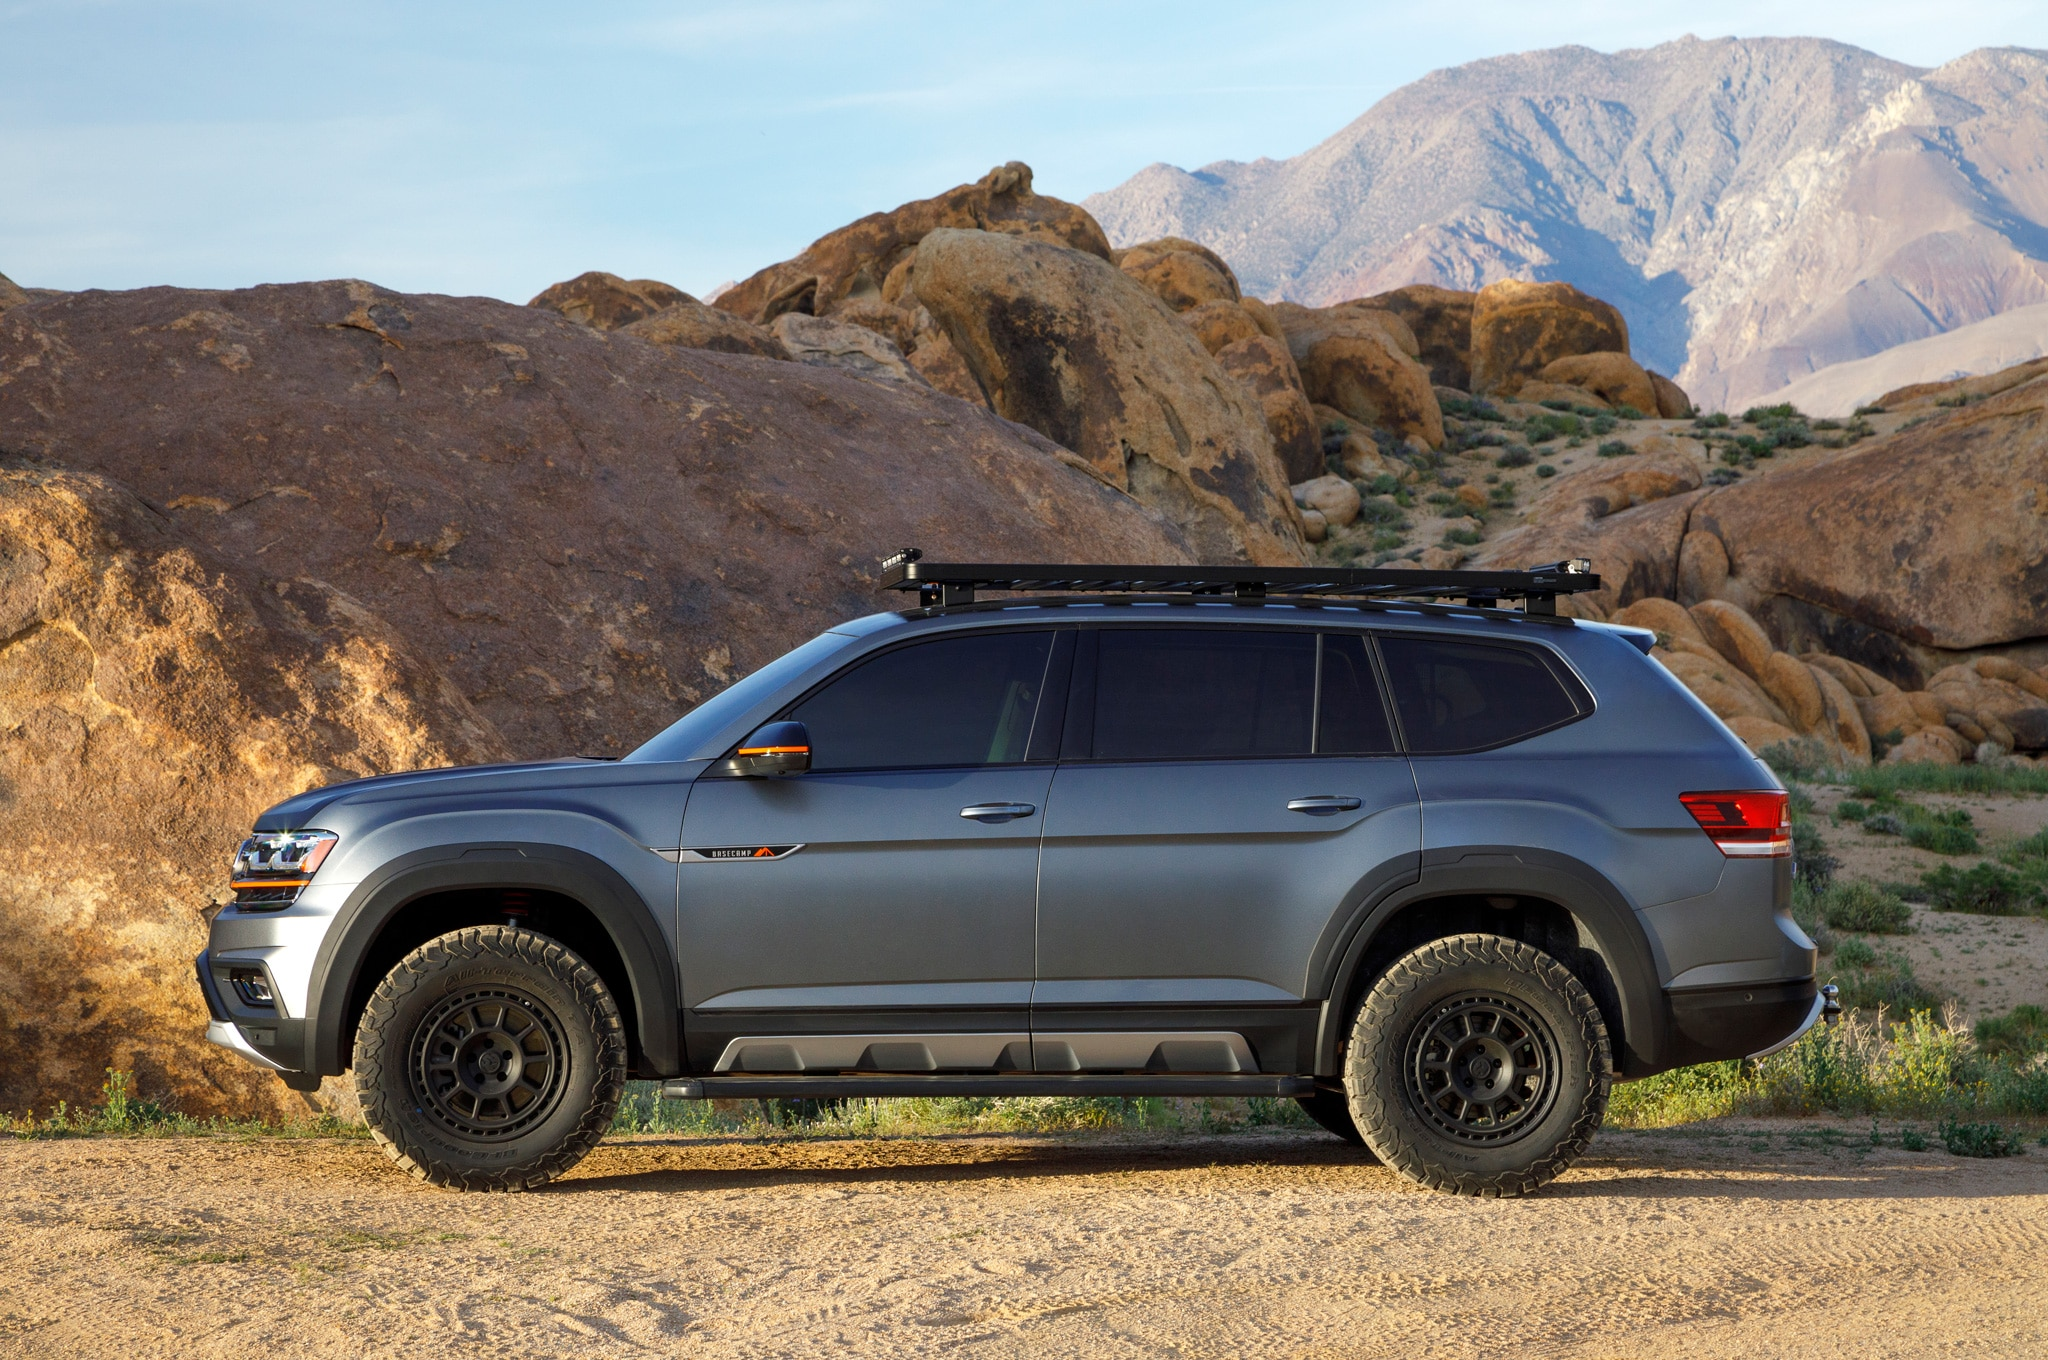 Lifted Volkswagen Atlas Basecamp Adds Some Trail Capability